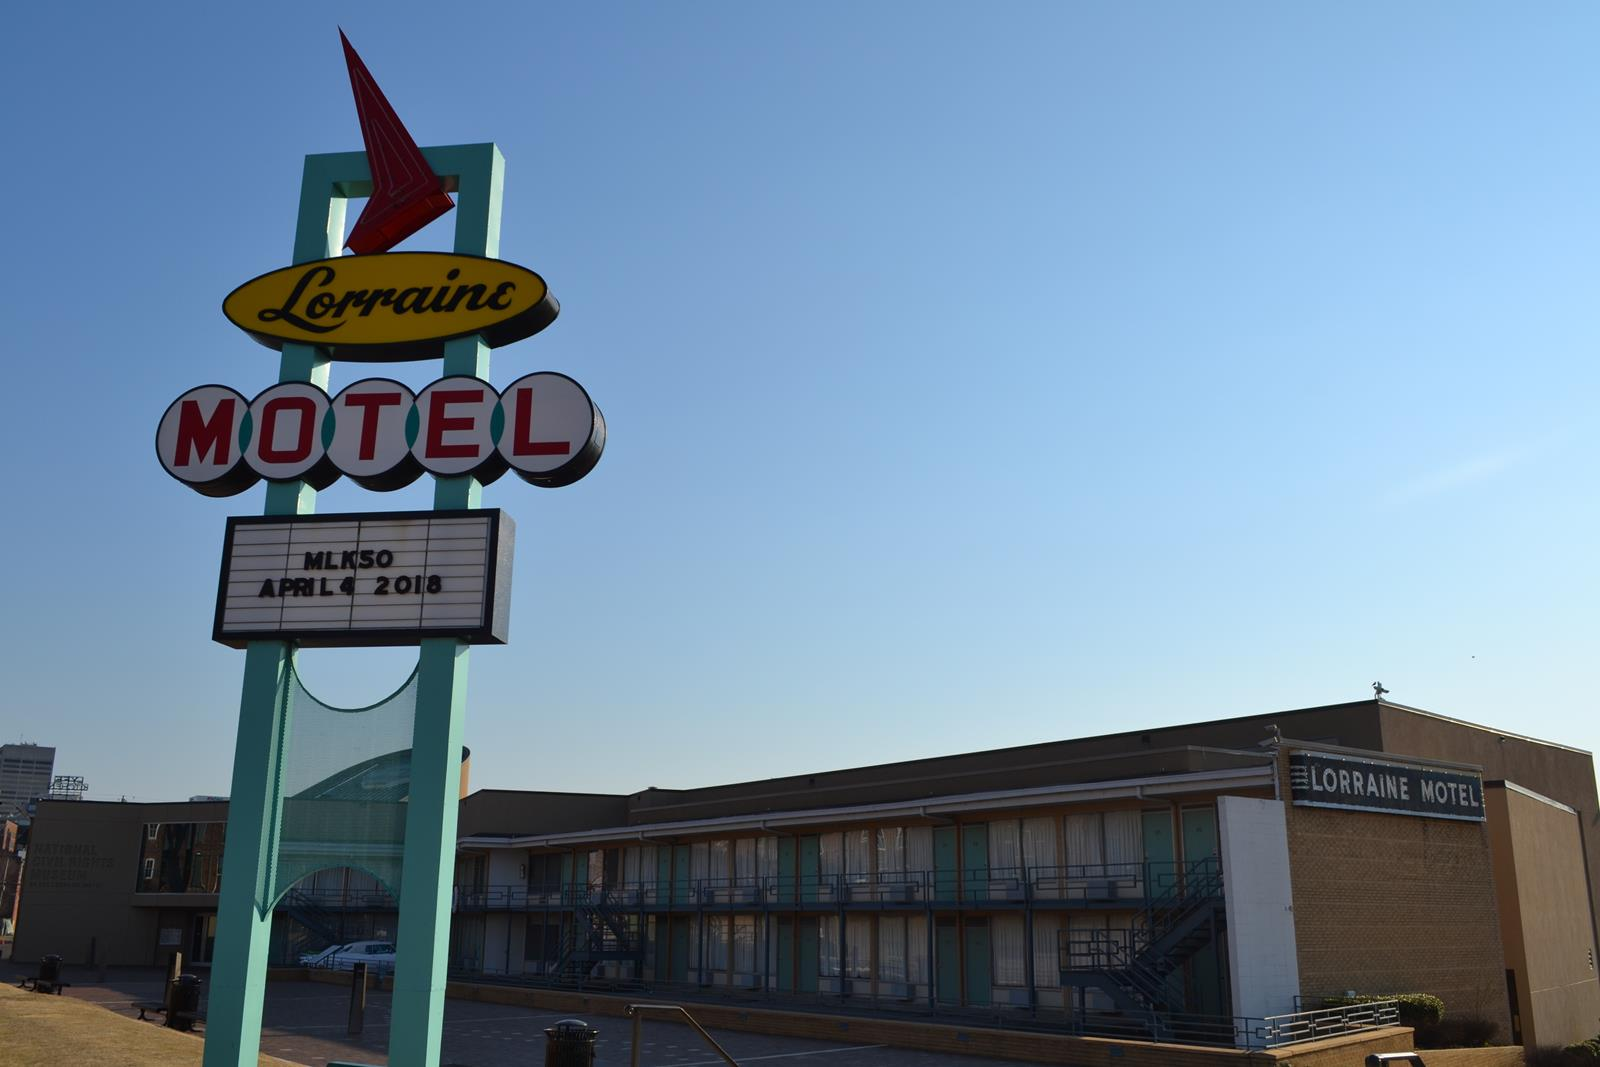 The Lorraine Hotel where Dr. Martin Luther King was shot is now a part of the National Civil Rights Museum.